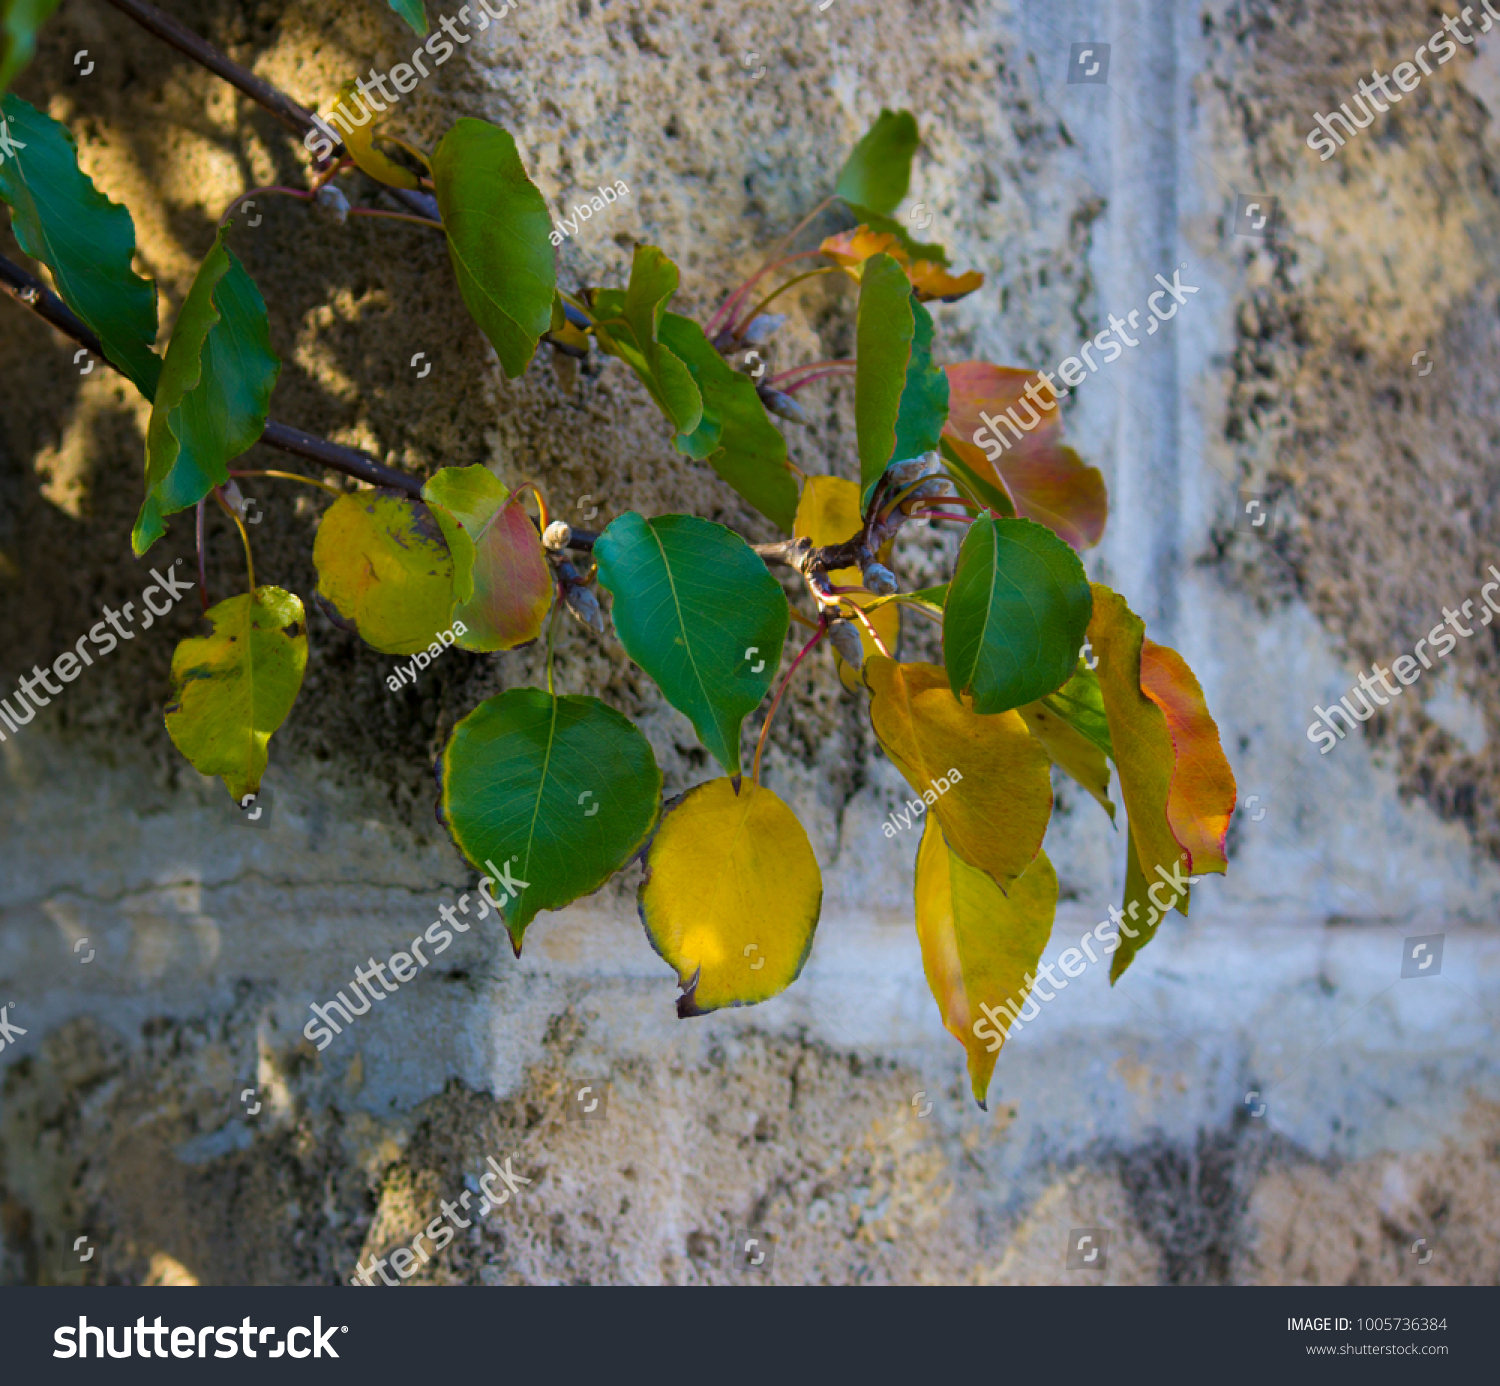 Brilliant Yellow Autumn Poplar Leaf Foliage Stock Photo 1005736384 ...